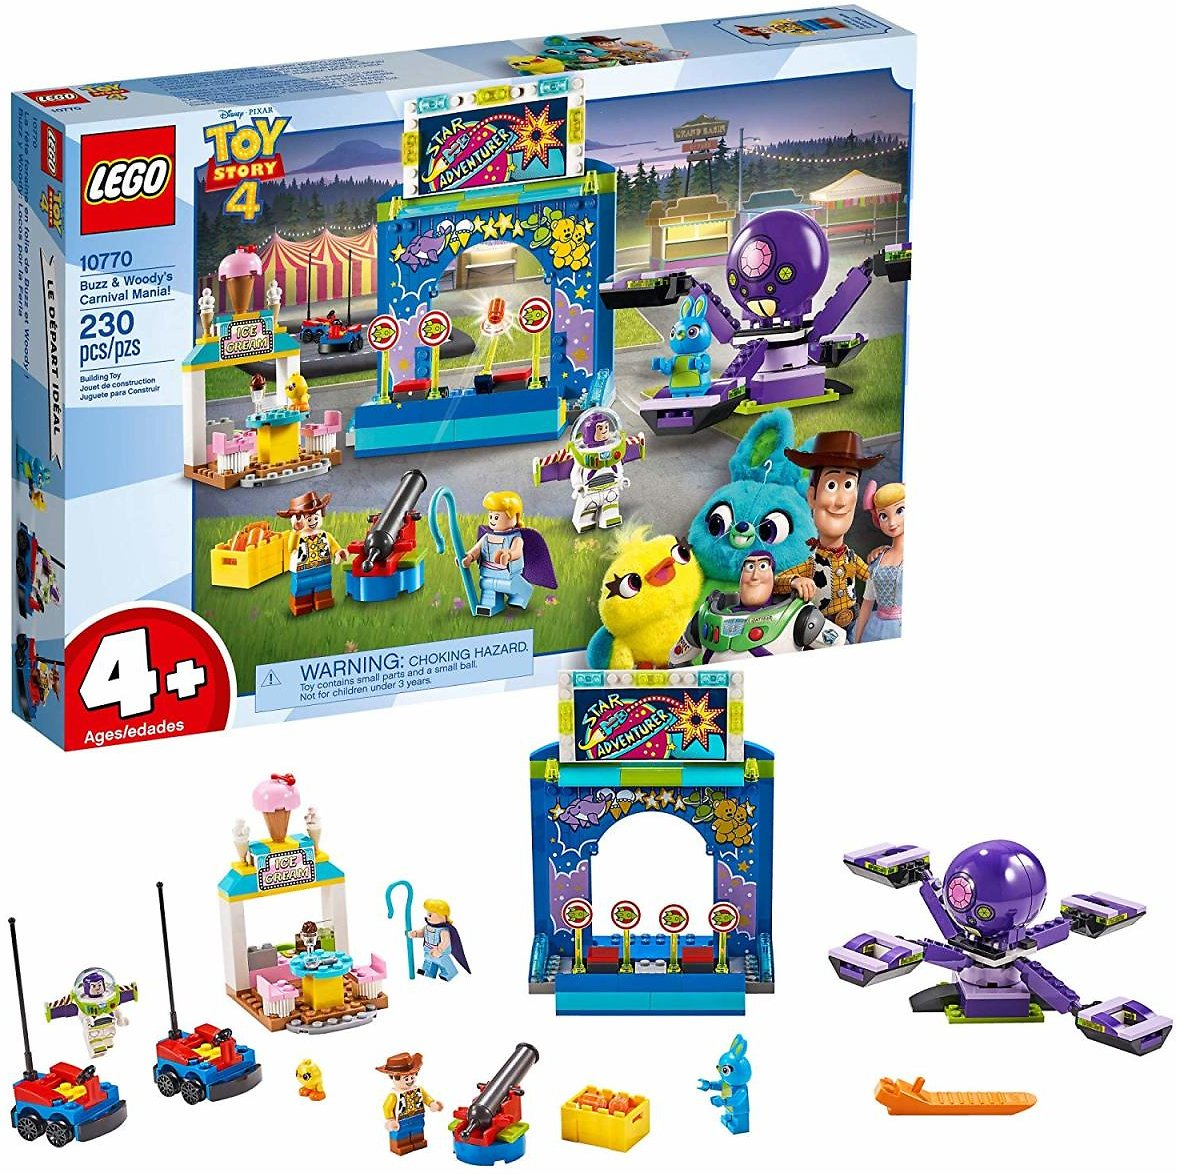 LEGO Toy Story 4 Carnival Mania! Building Kit (Ships Free)